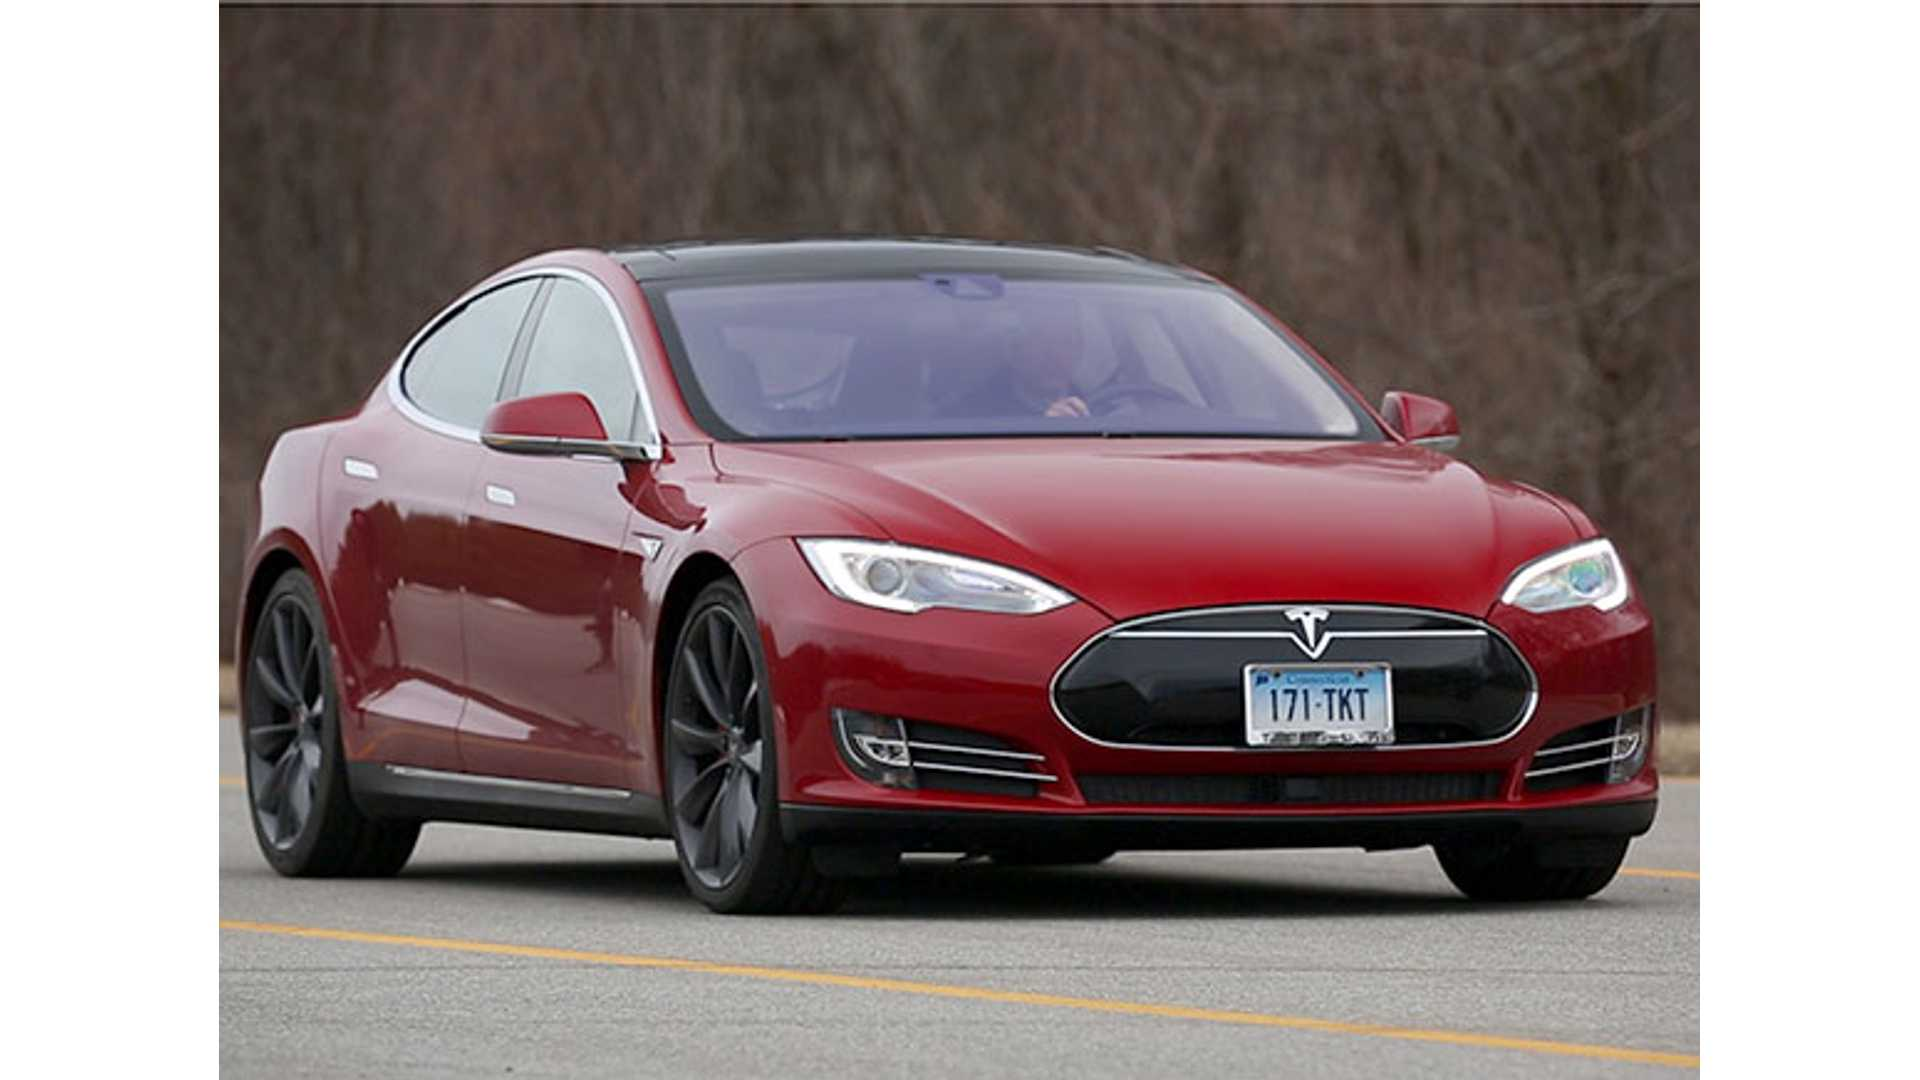 Tesla Model S Scores 103 Points On Consumer Reports' 0-100